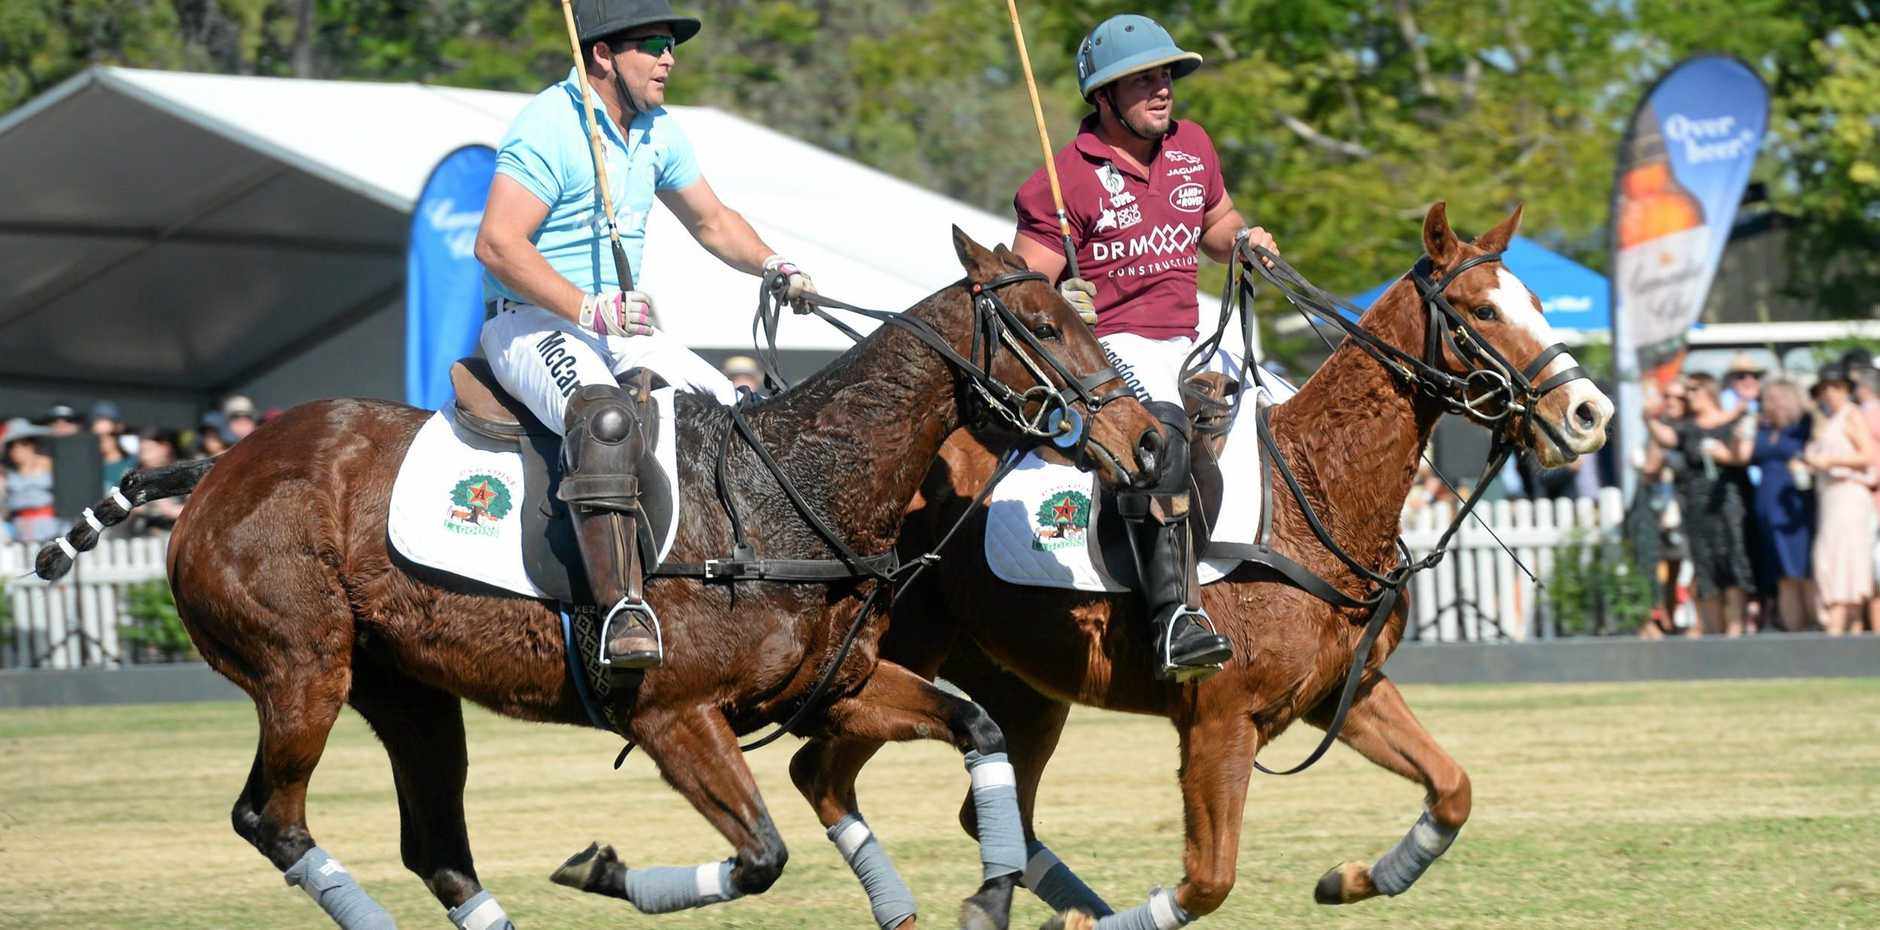 POP-UP POLO: Riders like Ric McCarthy and Zac Hagedoorn could soon be on their way to Bundaberg.